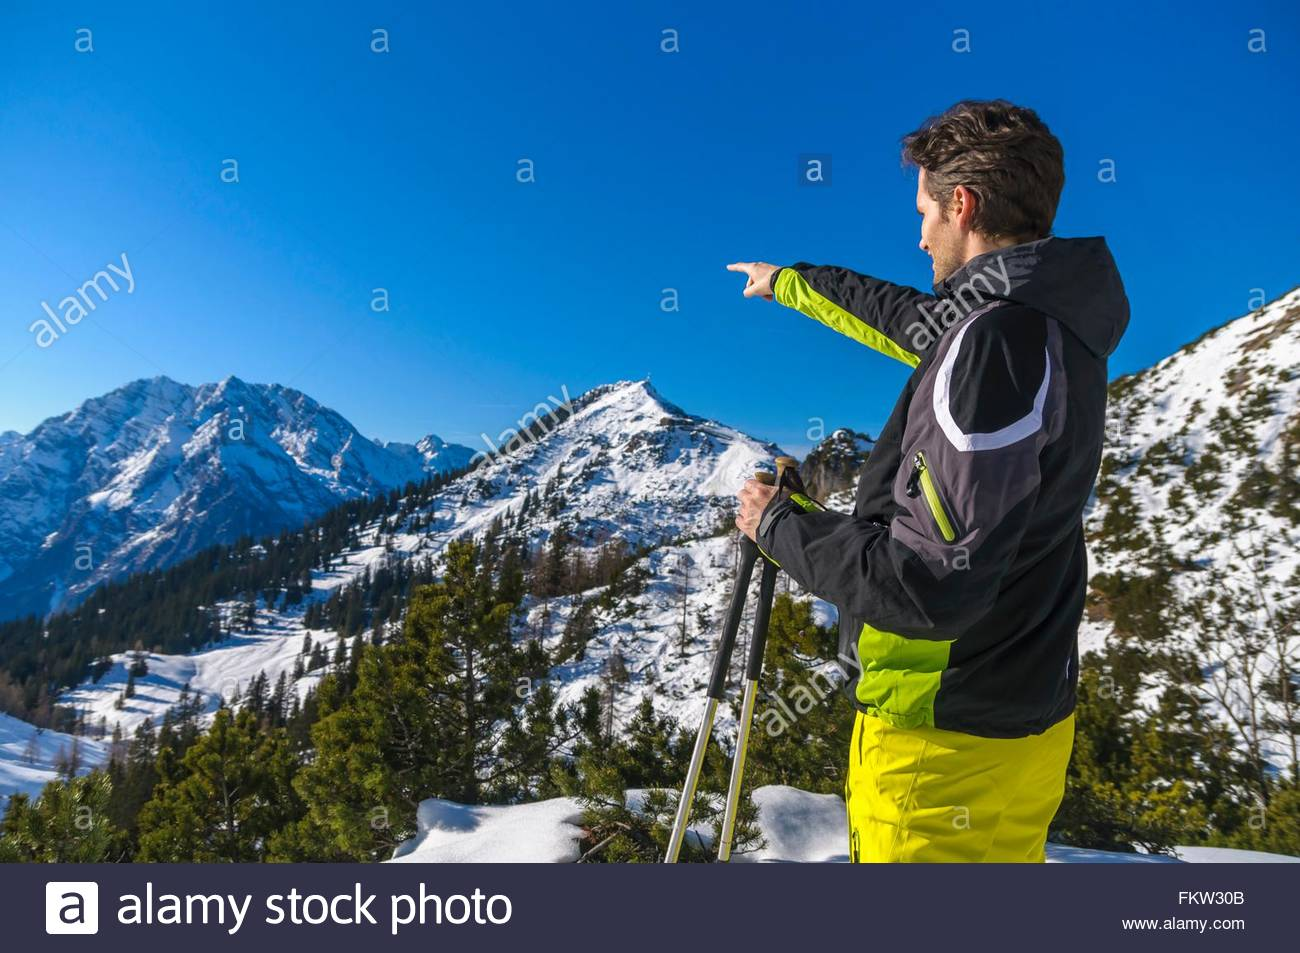 Side view of skier pointing at snow capped mountain range, Jenner, Berchtesgadener, Germany - Stock Image